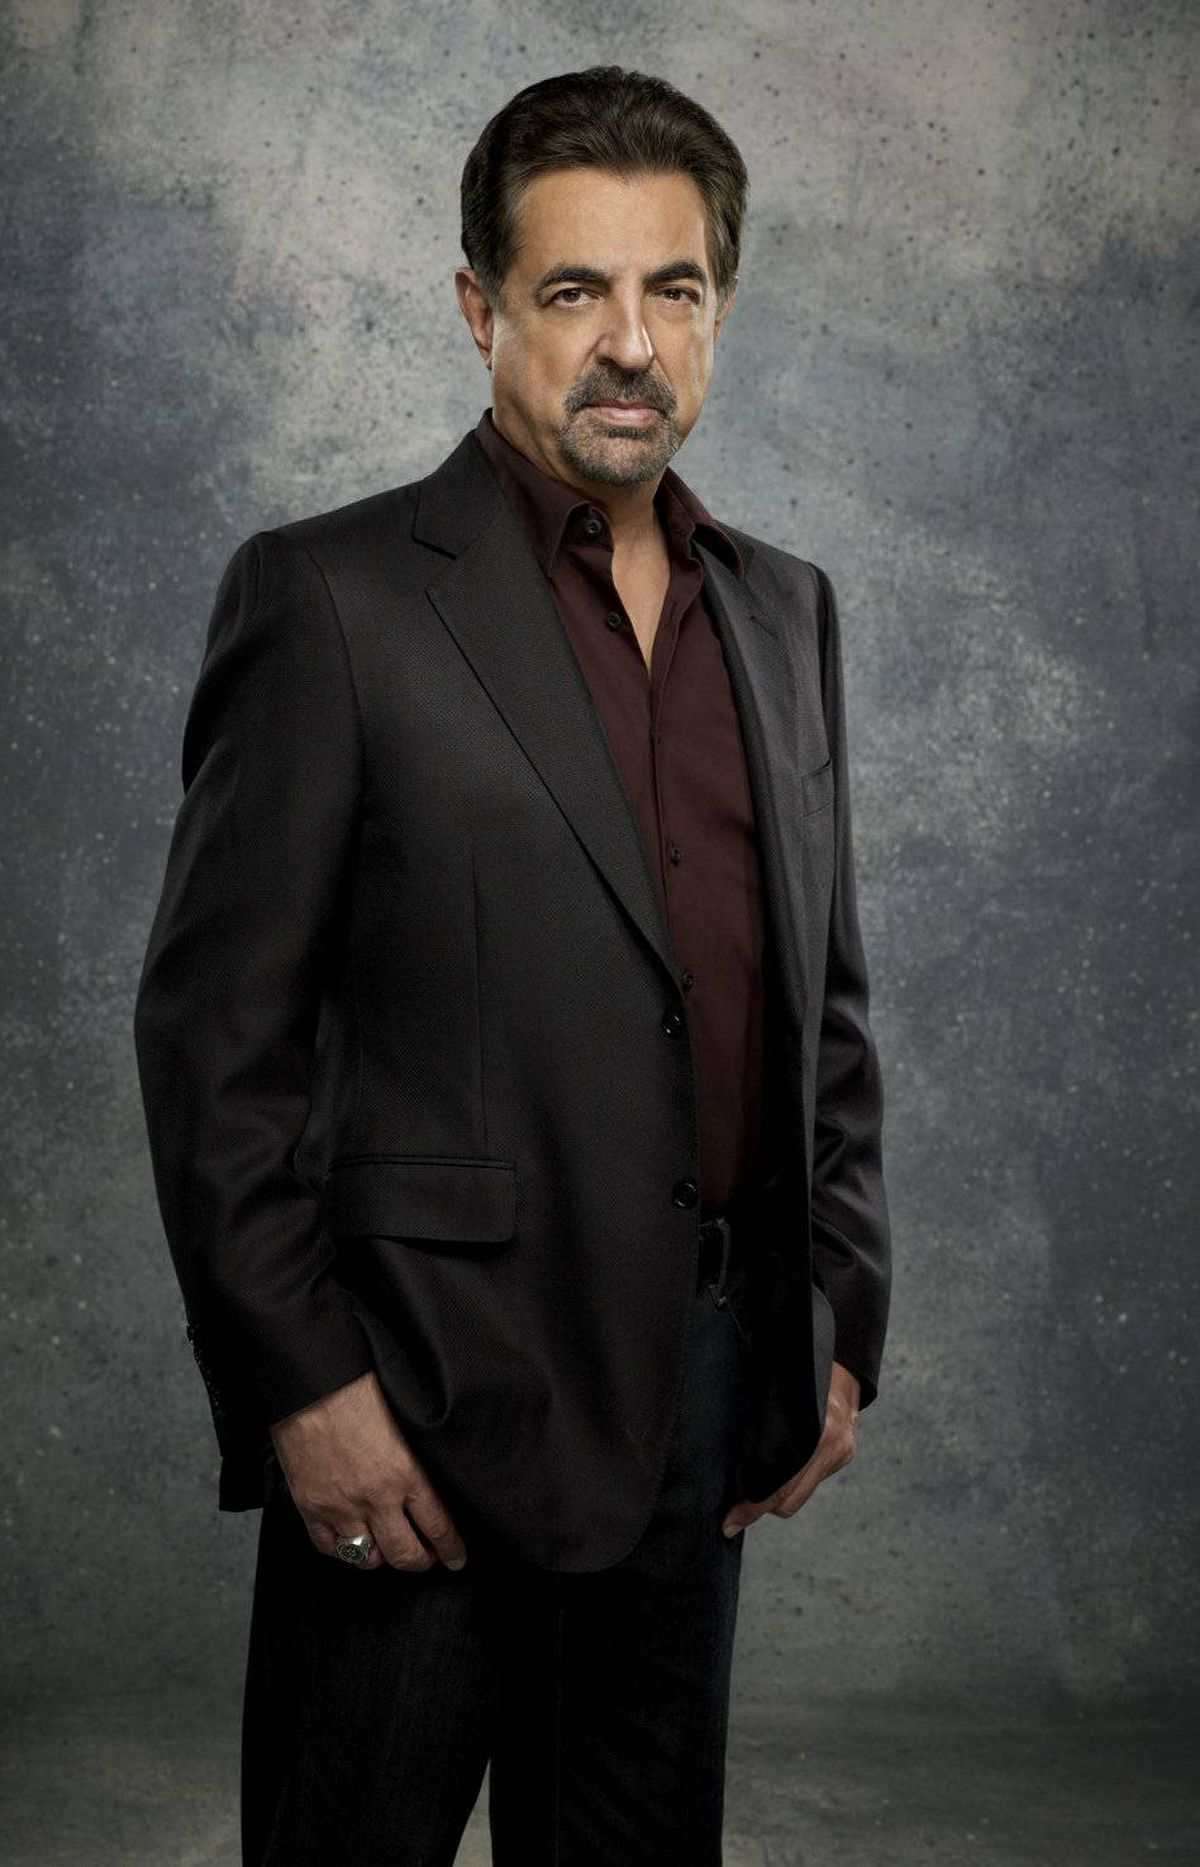 """DRAMA Criminal Minds CBS, CTV, 9 p.m. Still riding comfortably in Wednesday-night ratings, this sturdy crime procedural series reaches the 150th-episode plateau tonight with yet another disturbing tale. BAU agent David Rossi (Joe Mantegna) takes his team to Houston to conduct a massive search for a serial offender known as """"The Piano Man,"""" who has recently resurfaced and is reassaulting his victims. TV veteran Penny Peyser guest-stars as a psychotherapist working the case."""